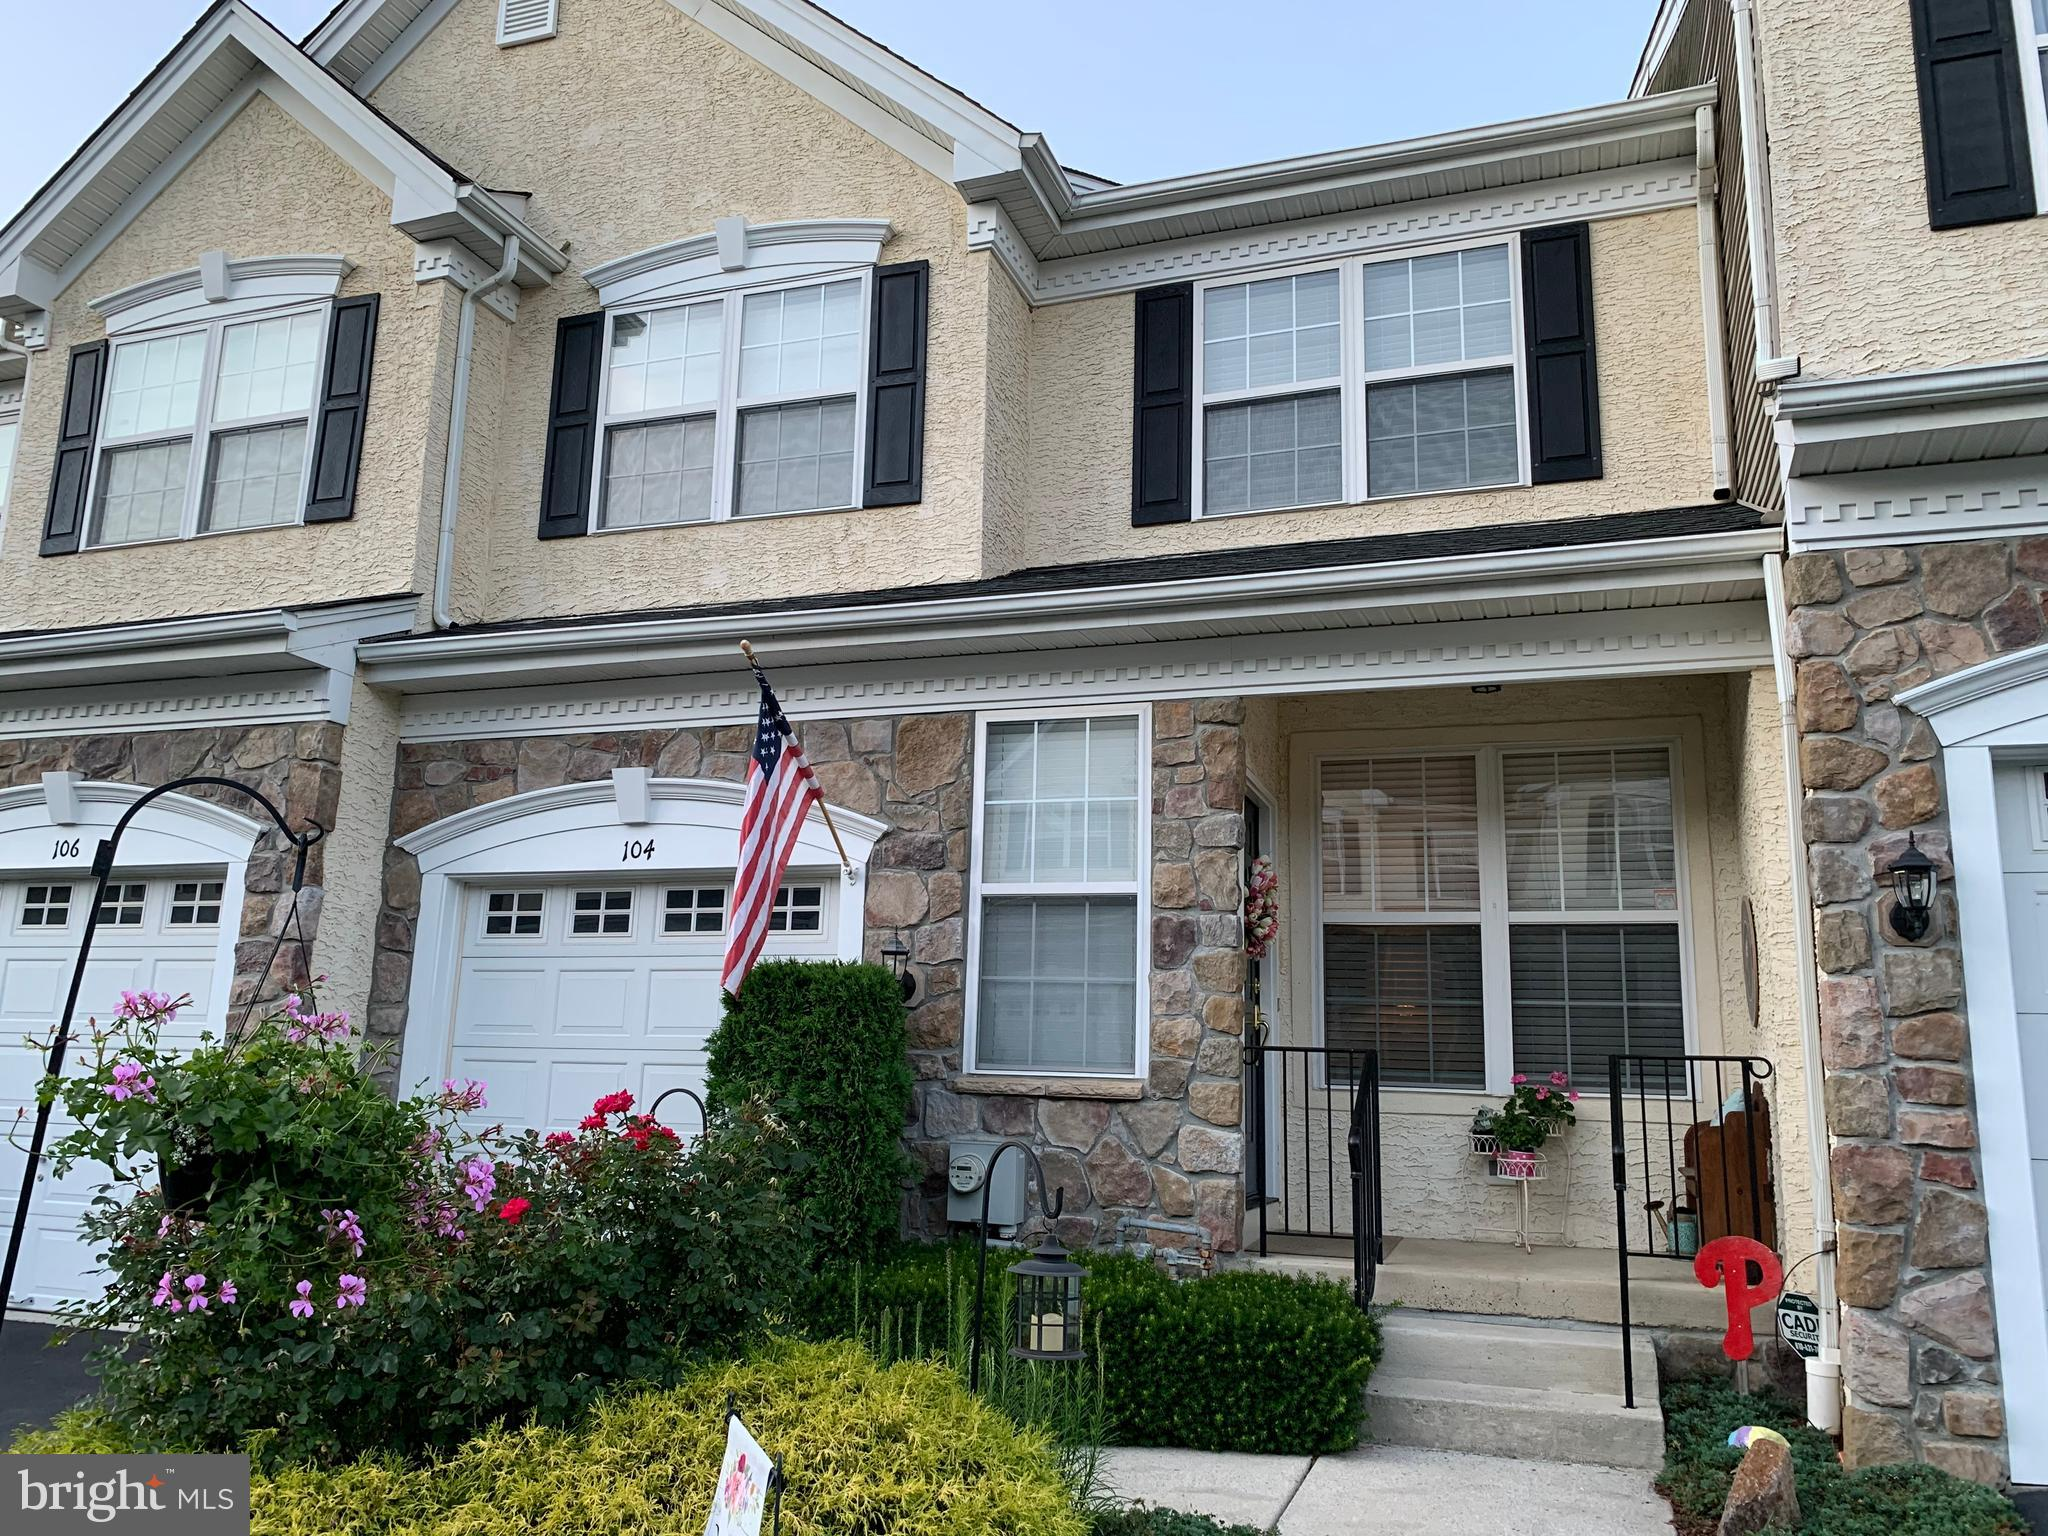 """Tucked in the lovely sought after Willistown Hunt Community, is this spacious 3 bedroom / 4 bath townhome unit that could suit all your needs.  This townhouse is currently rented until April 2022 so it could be used for an investment opportunity, or a temporary investment then take advantage of the extra time for a 2022 move in date. Enter from the quaint front porch into the spacious living room and dining room which features bright lighting, open floor concept, wainscoting, crown molding and sparkling hardwood flooring. Continue through to the family room which boasts a 2-story cathedral ceiling, a gas fireplace which is enhanced with large windows on each side and a breathtaking atrium window that showcases the room.  Enjoy cooking in this amazing eat in kitchen accented with granite countertops, 42"""" maple cabinets, peninsula seating, stainless steel appliances including a brand new microwave and oven/range and a large pantry closet.  Sliding glass doors allows an exit off the kitchen onto the trex deck flanking beautiful tranquil wooded views perfect for relaxing after a hard days work.  Completing the first floor is an exit/entrance into the garage and a powder room with ceramic tile.  The upper level brandishes a large master bedroom with a trey ceiling, recessed lighting and ceiling fan.  Step right into this fully equipped master bath and enjoy the soaking tub or standup shower and spacious vanity area.  Carry through down the hallway and celebrate an upper level laundry area with newer ceramic tile floor, a washer and dryer along with a laundry tub.  Finishing out that level are two additional bedrooms and a full bath.  Set your heart on this vacation like basement that is sure to excite.  This daylight basement is enhanced with surround sound, custom built in shelving, an electric fireplace, recessed lighting, a beautiful bar with bar seating, custom built pool rack, ceramic tile floor, three storage areas and an additional half bath.  A new roof has just """